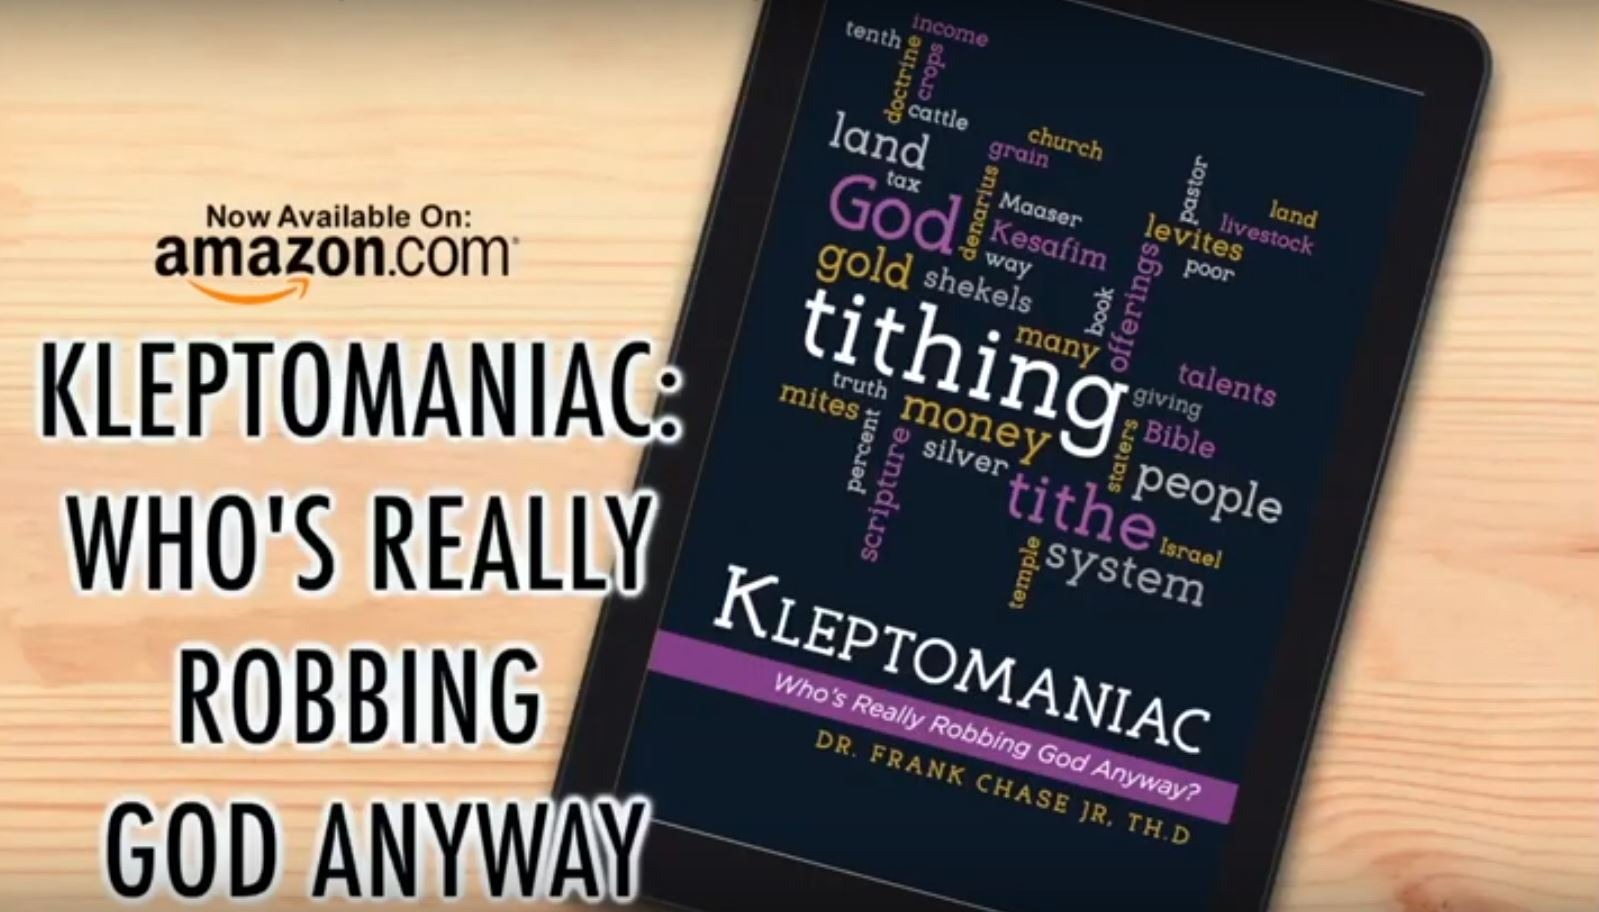 KLEPTOMANIAC: Who's Really Robbing God Anyway? by Frank Chase Jr.